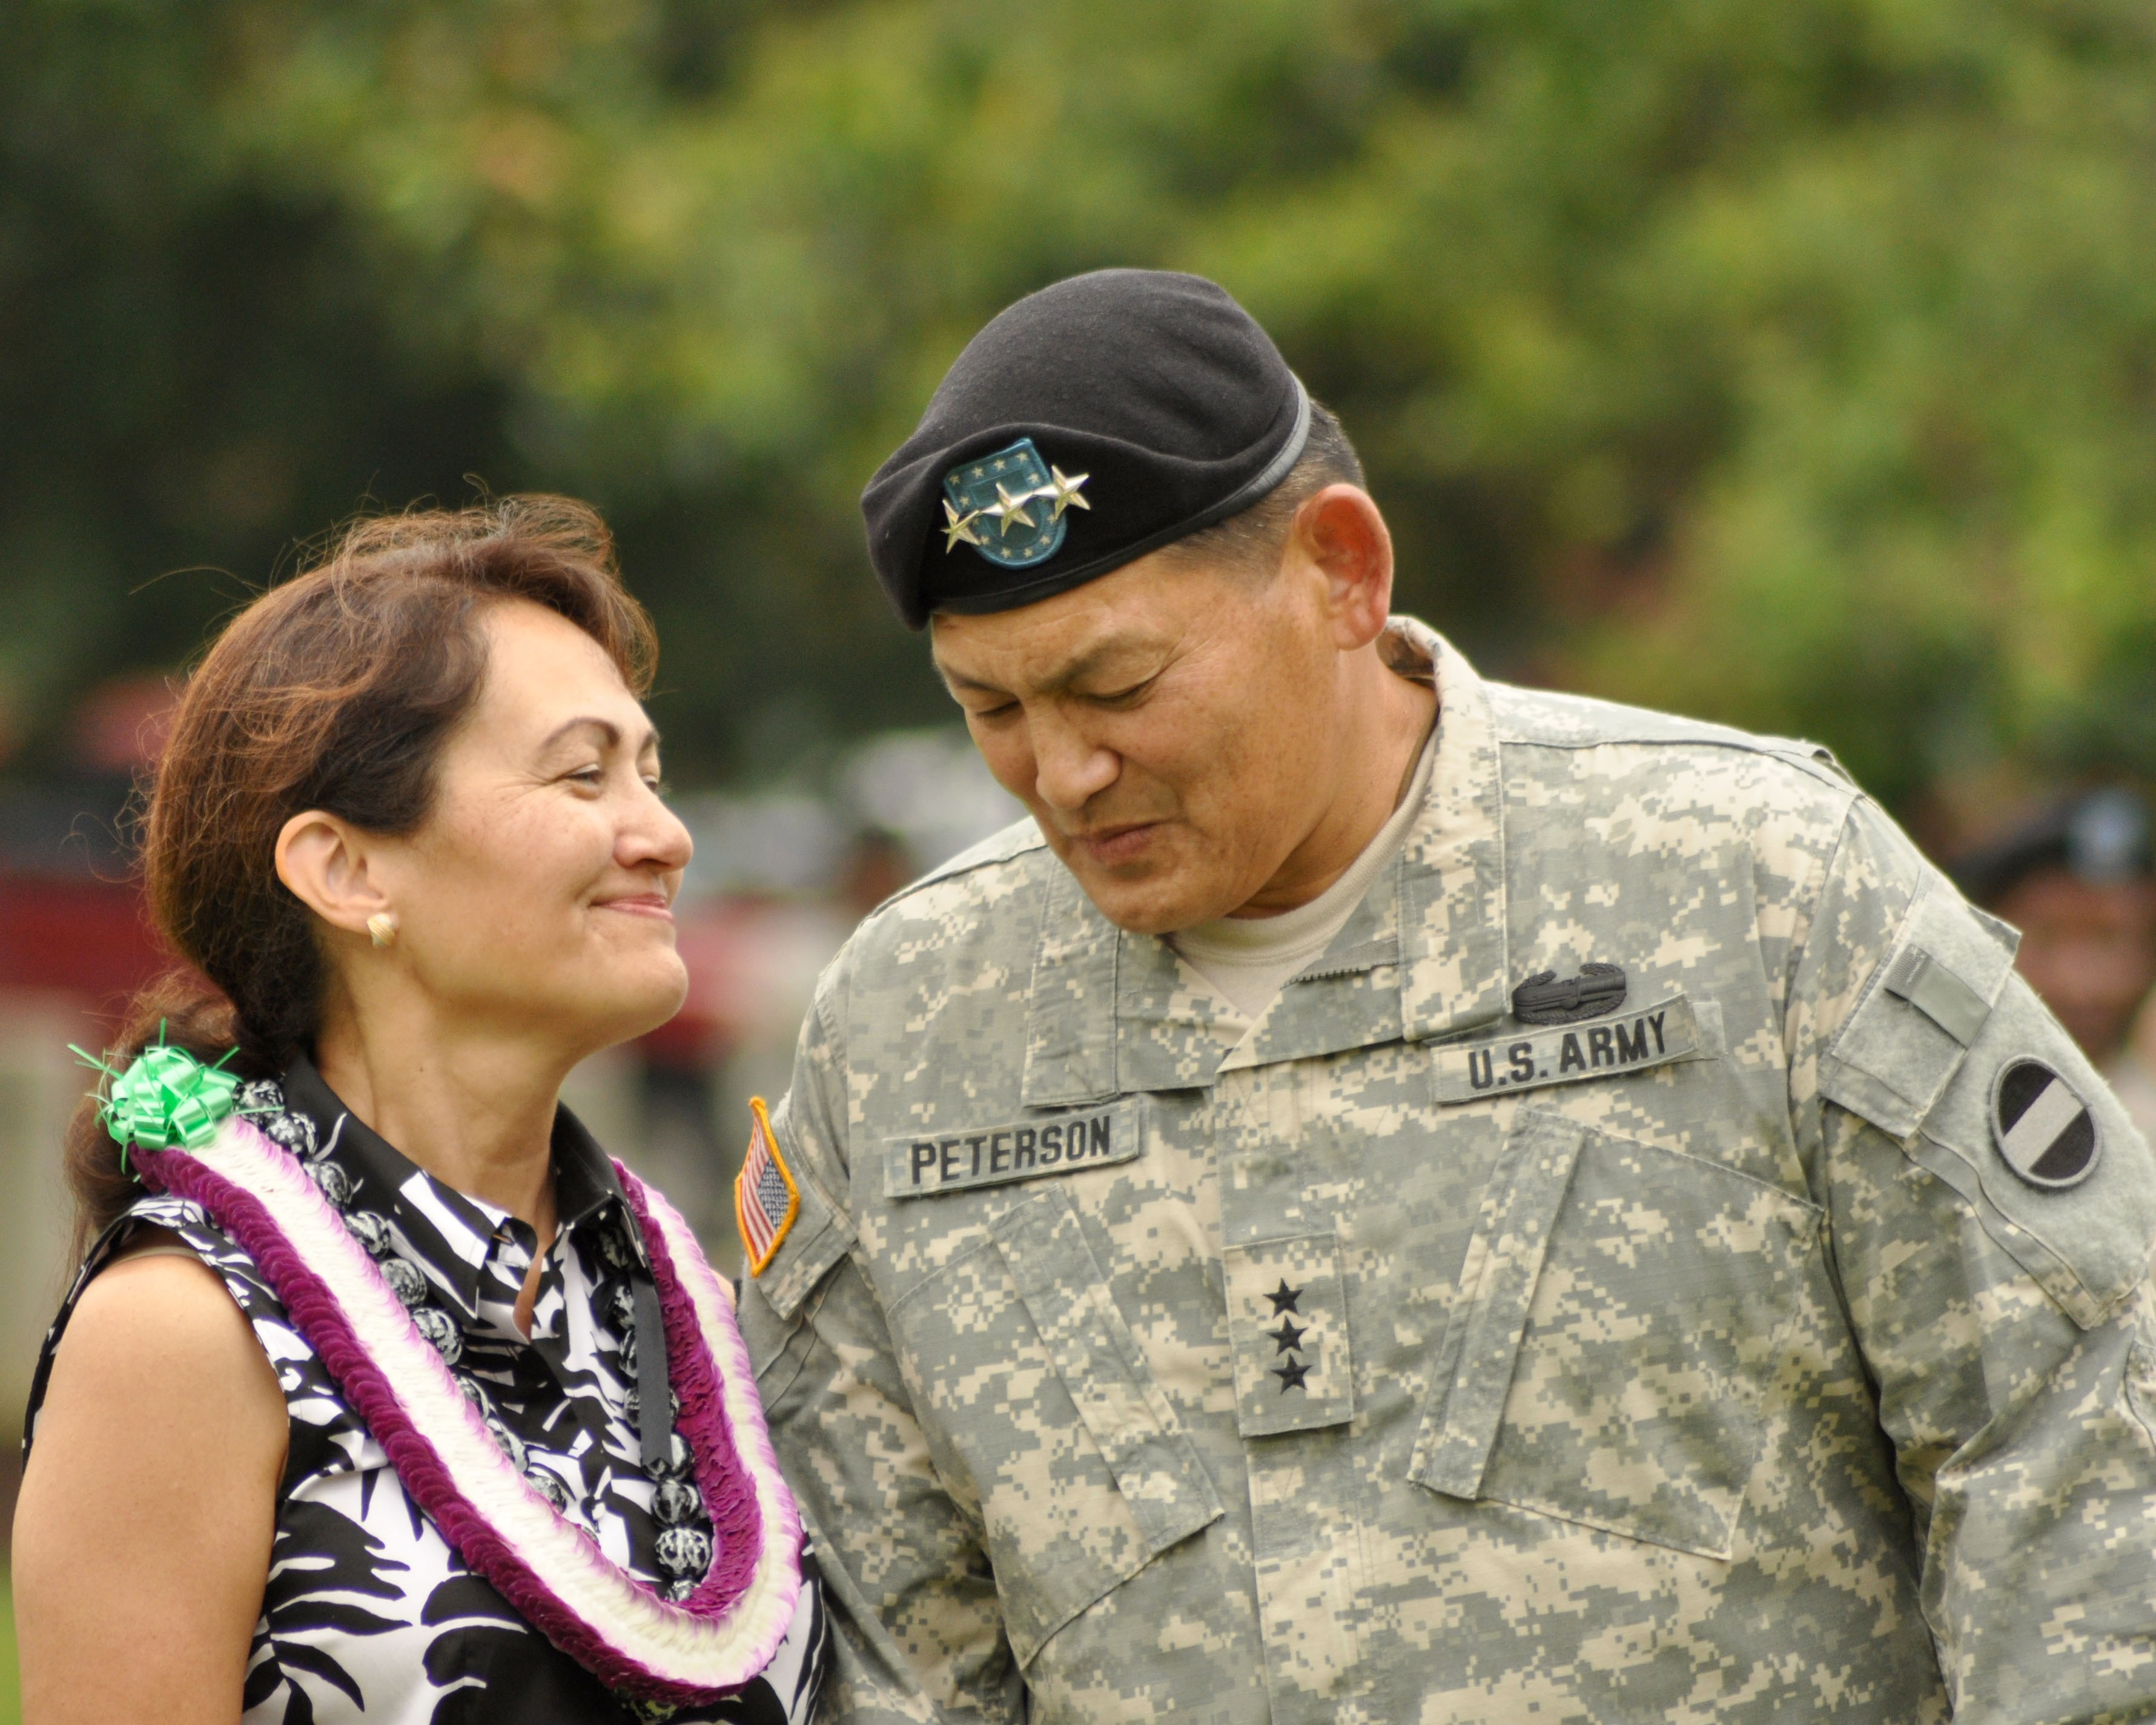 Army color casing ceremony script - Joseph F Peterson And His Wife Ann Exchange Gestures With Each Other During An Instrumental Performance By The Army Ground Forces Band Of Aloha Oe